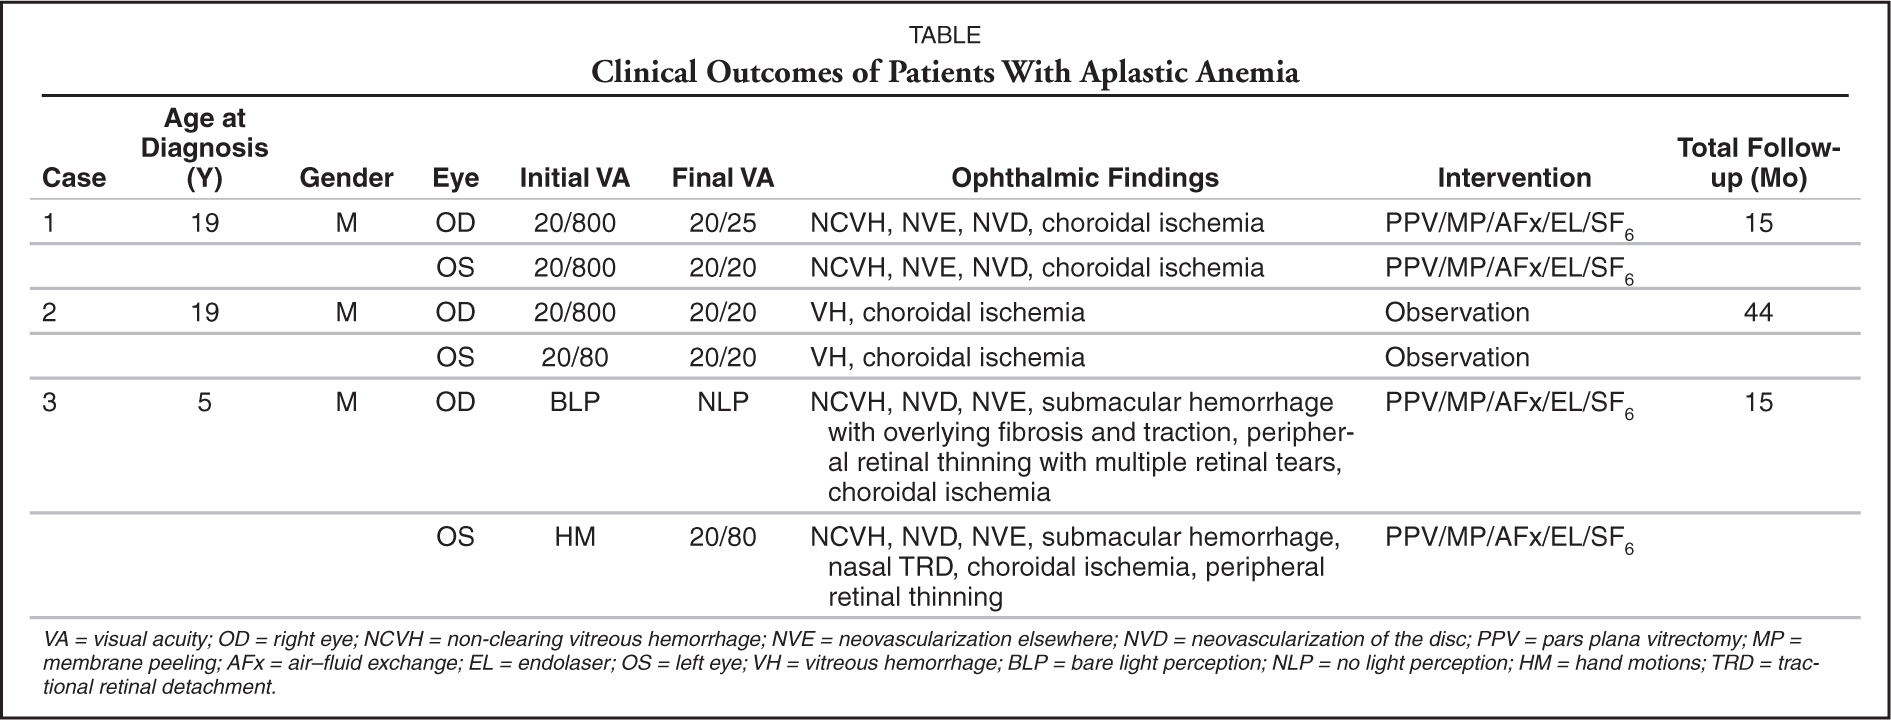 Clinical Outcomes of Patients with Aplastic Anemia